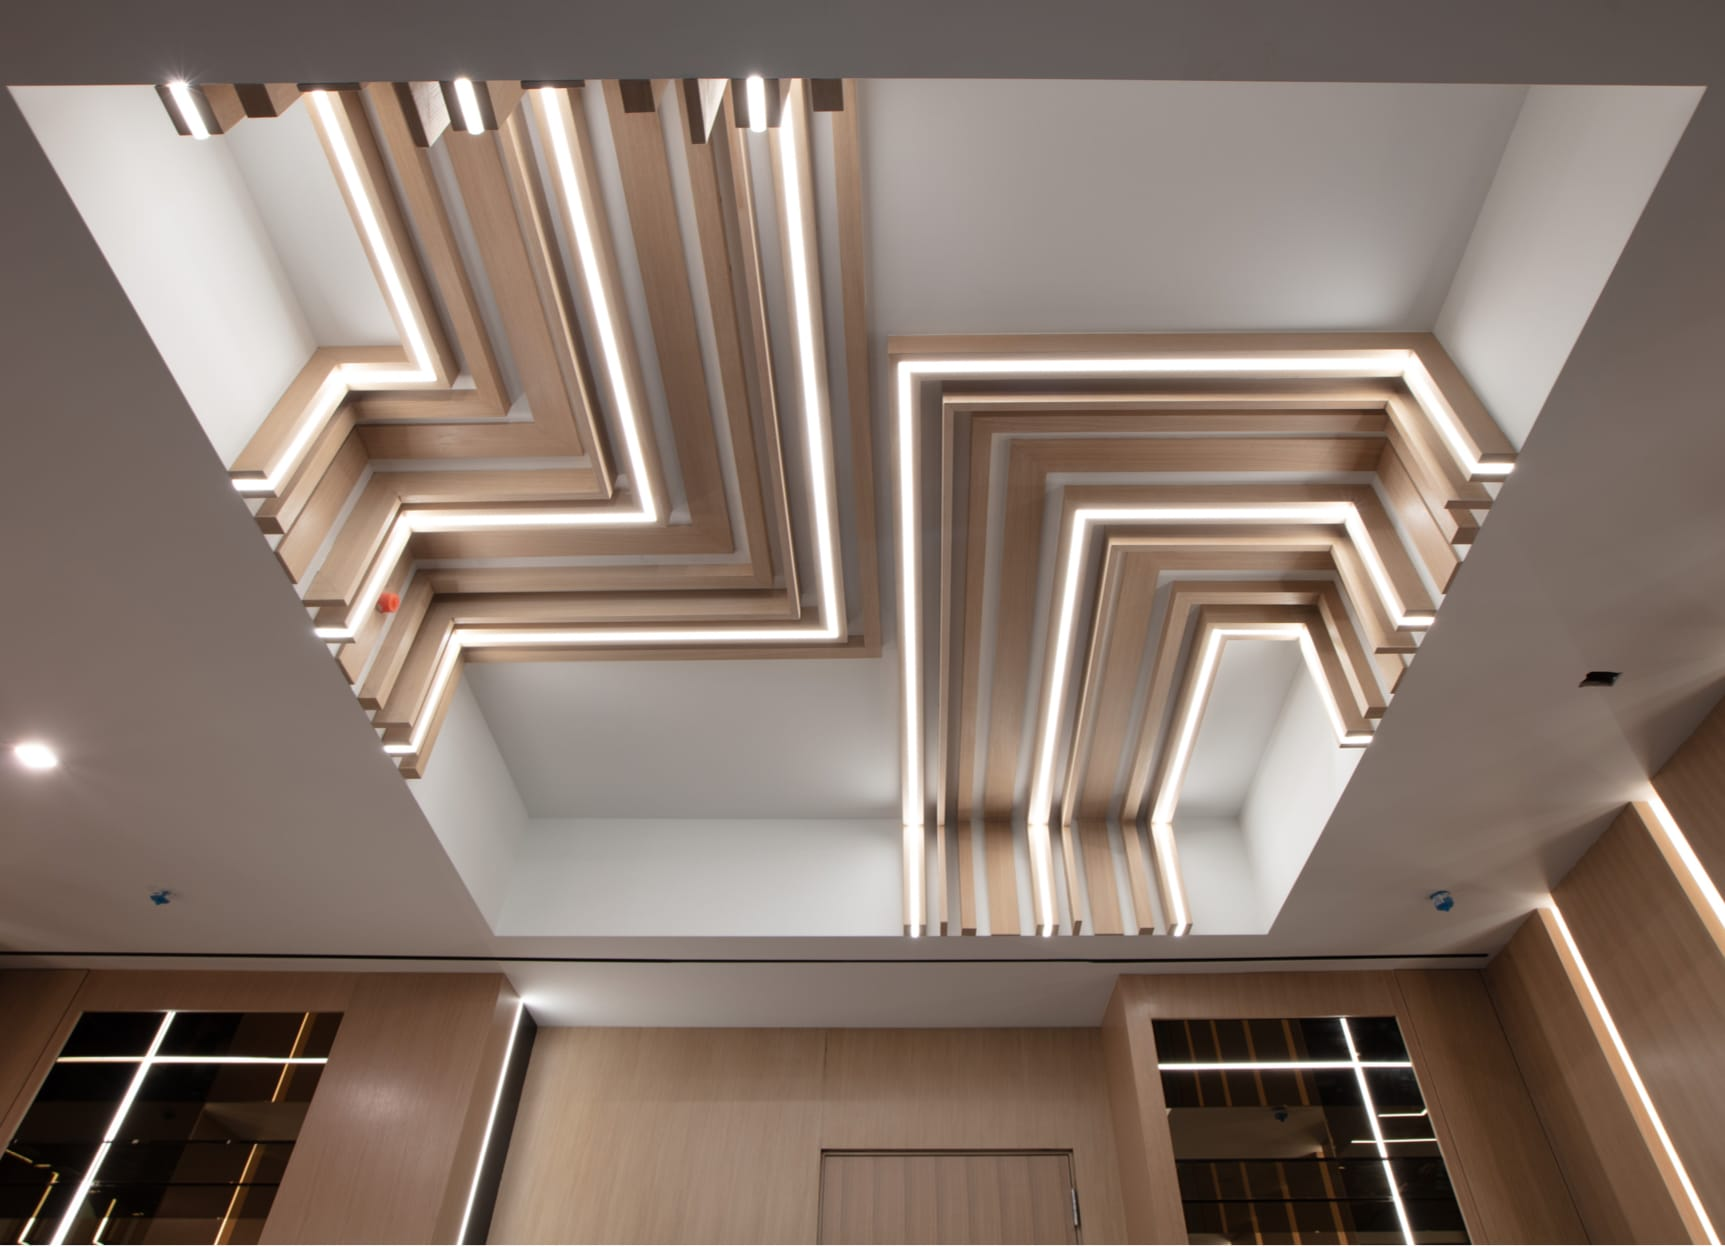 Ceiling - elegant and modern.